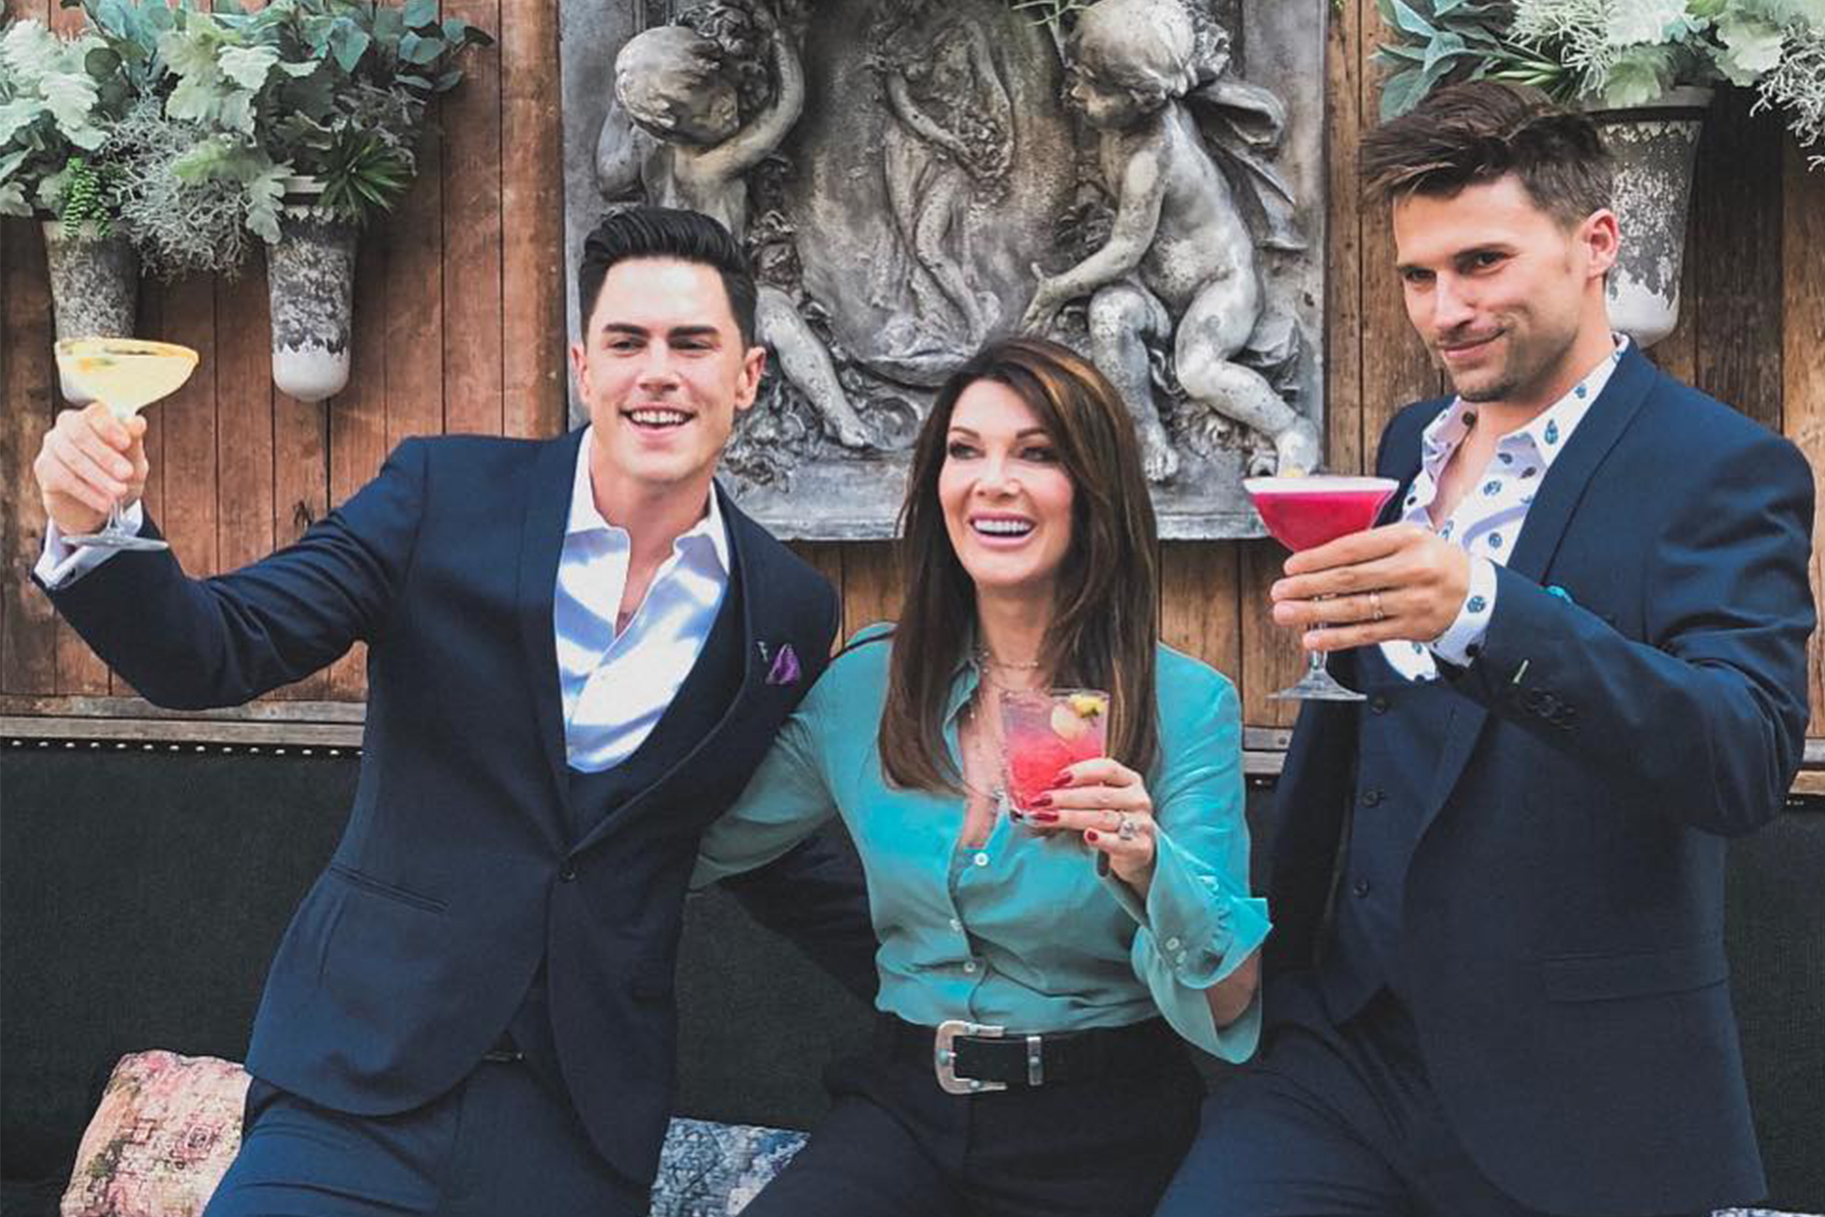 Lisa Vanderpump, Tom Schwartz, Tom Sandoval: Tom Tom